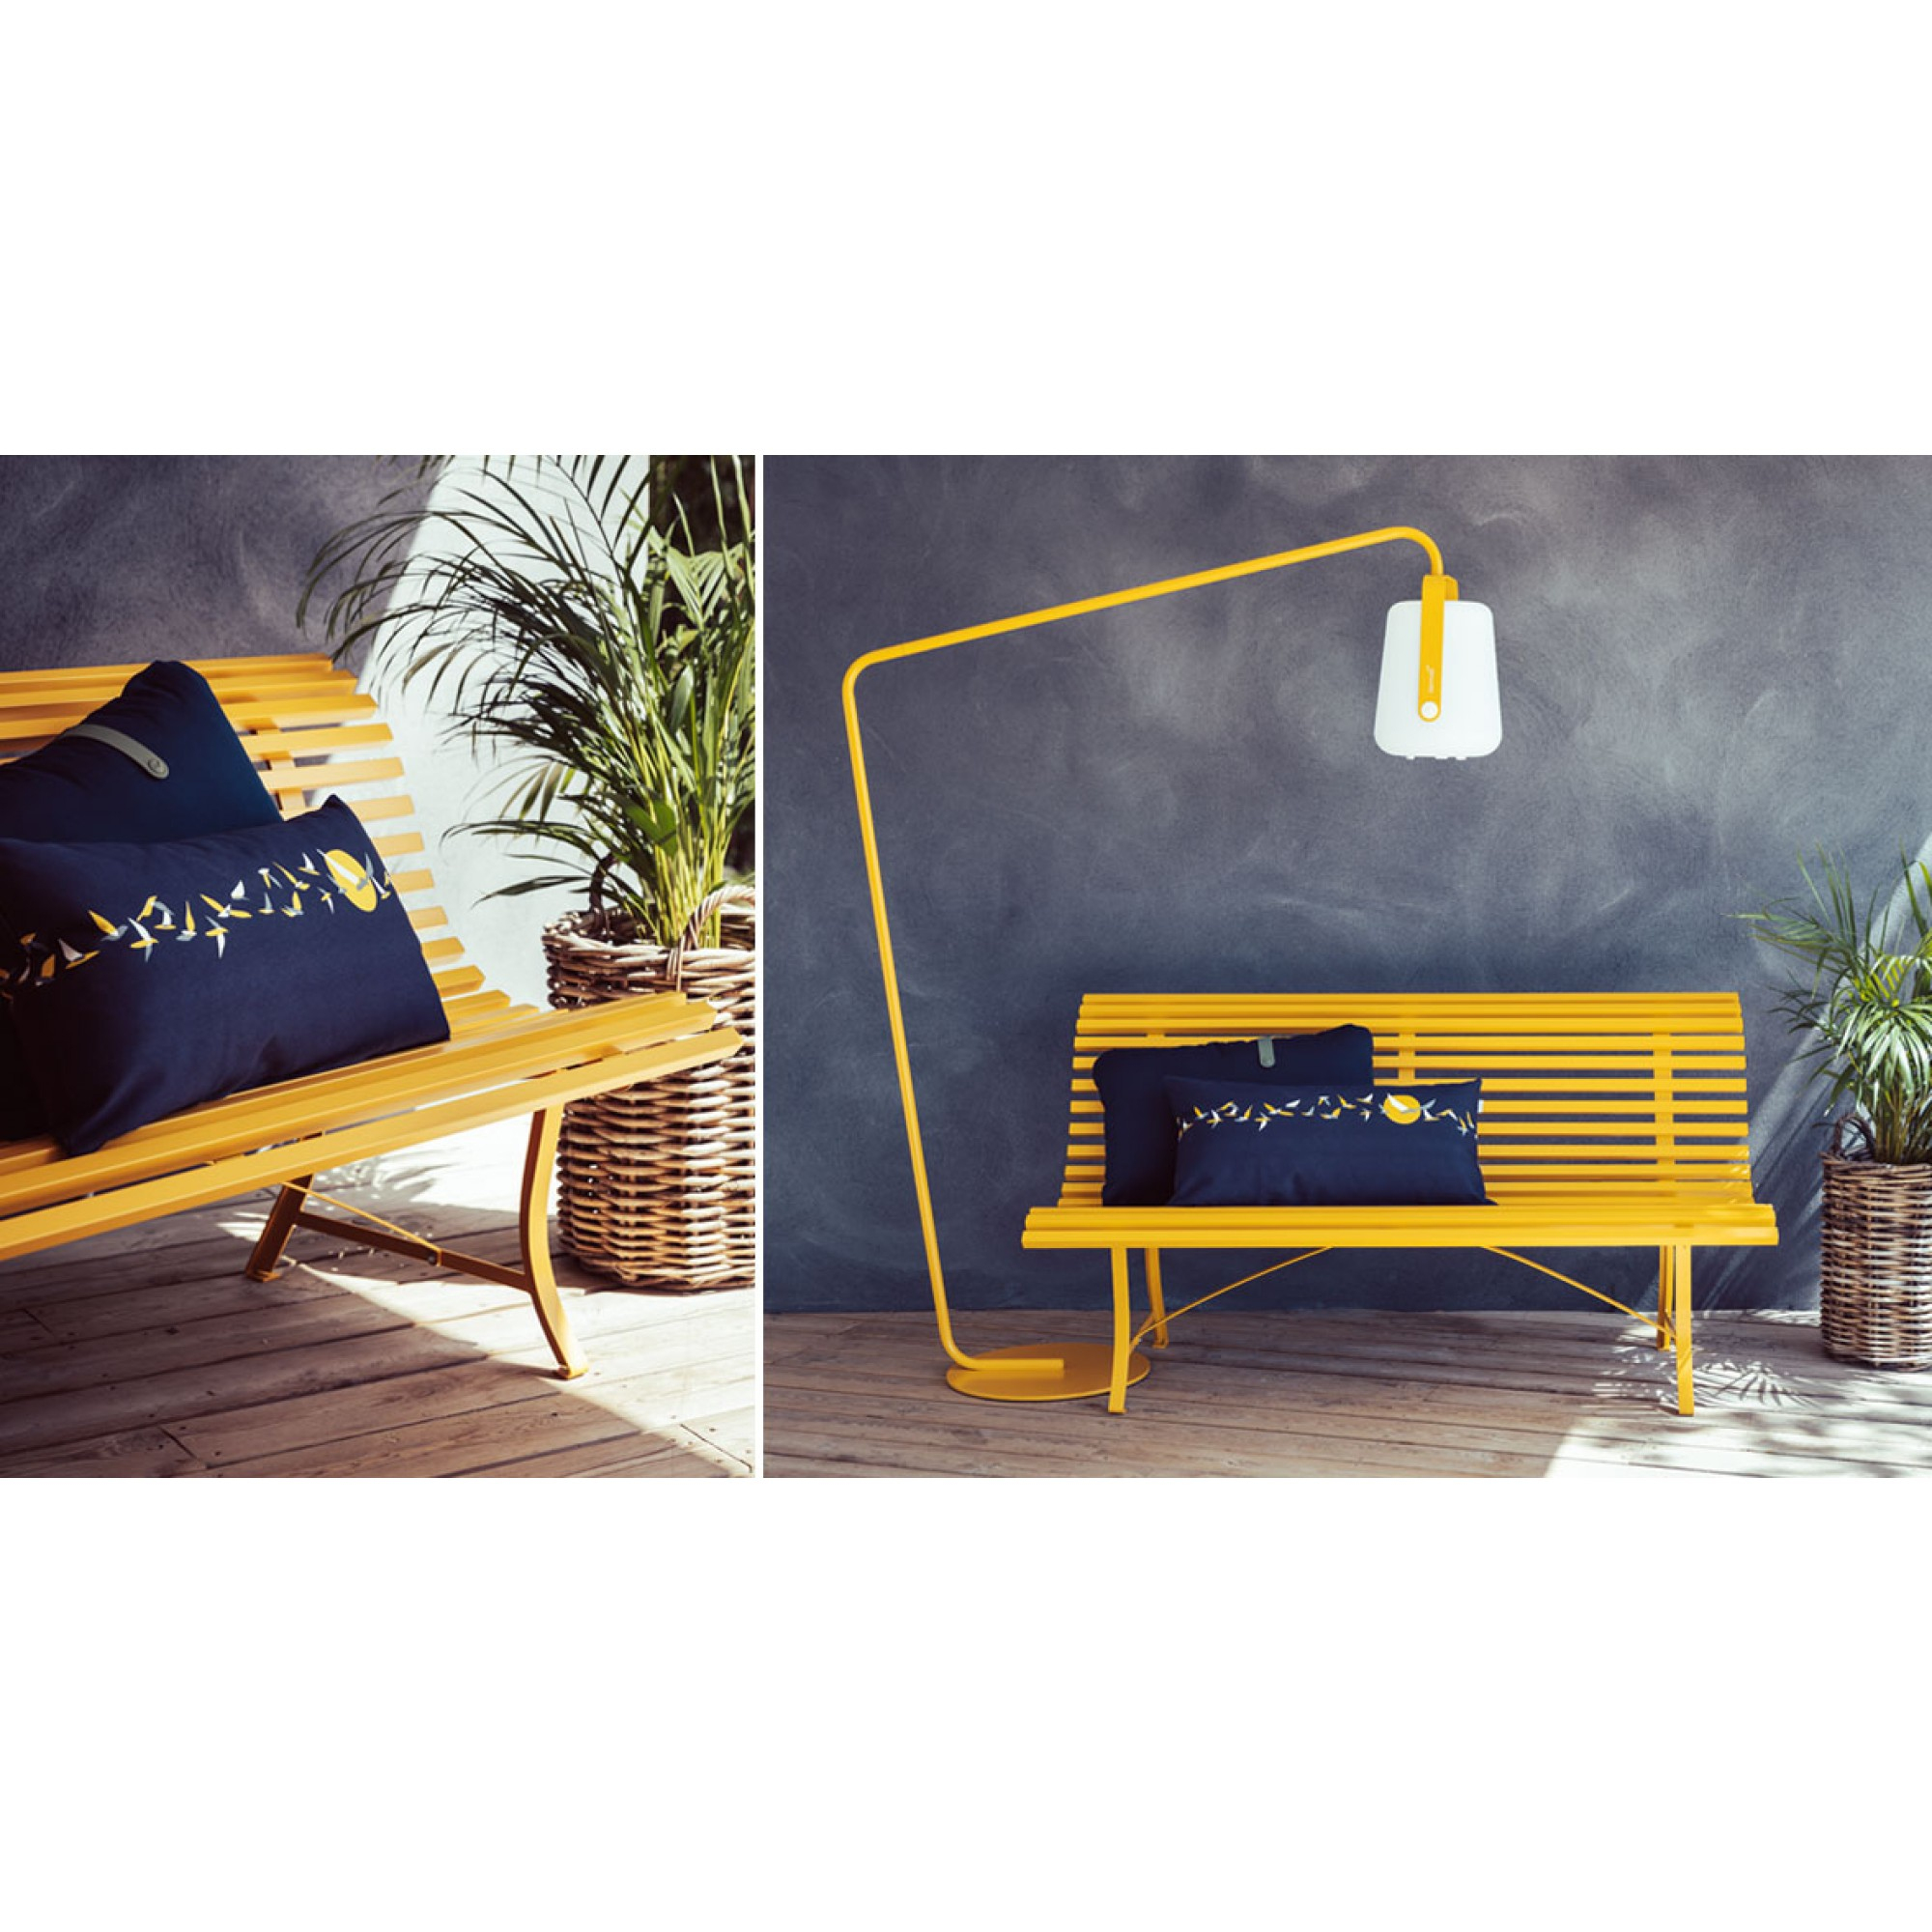 Louisiane | Benches | Accessories | Fermob - Masonionline dedans Banc De Jardin Louisiane